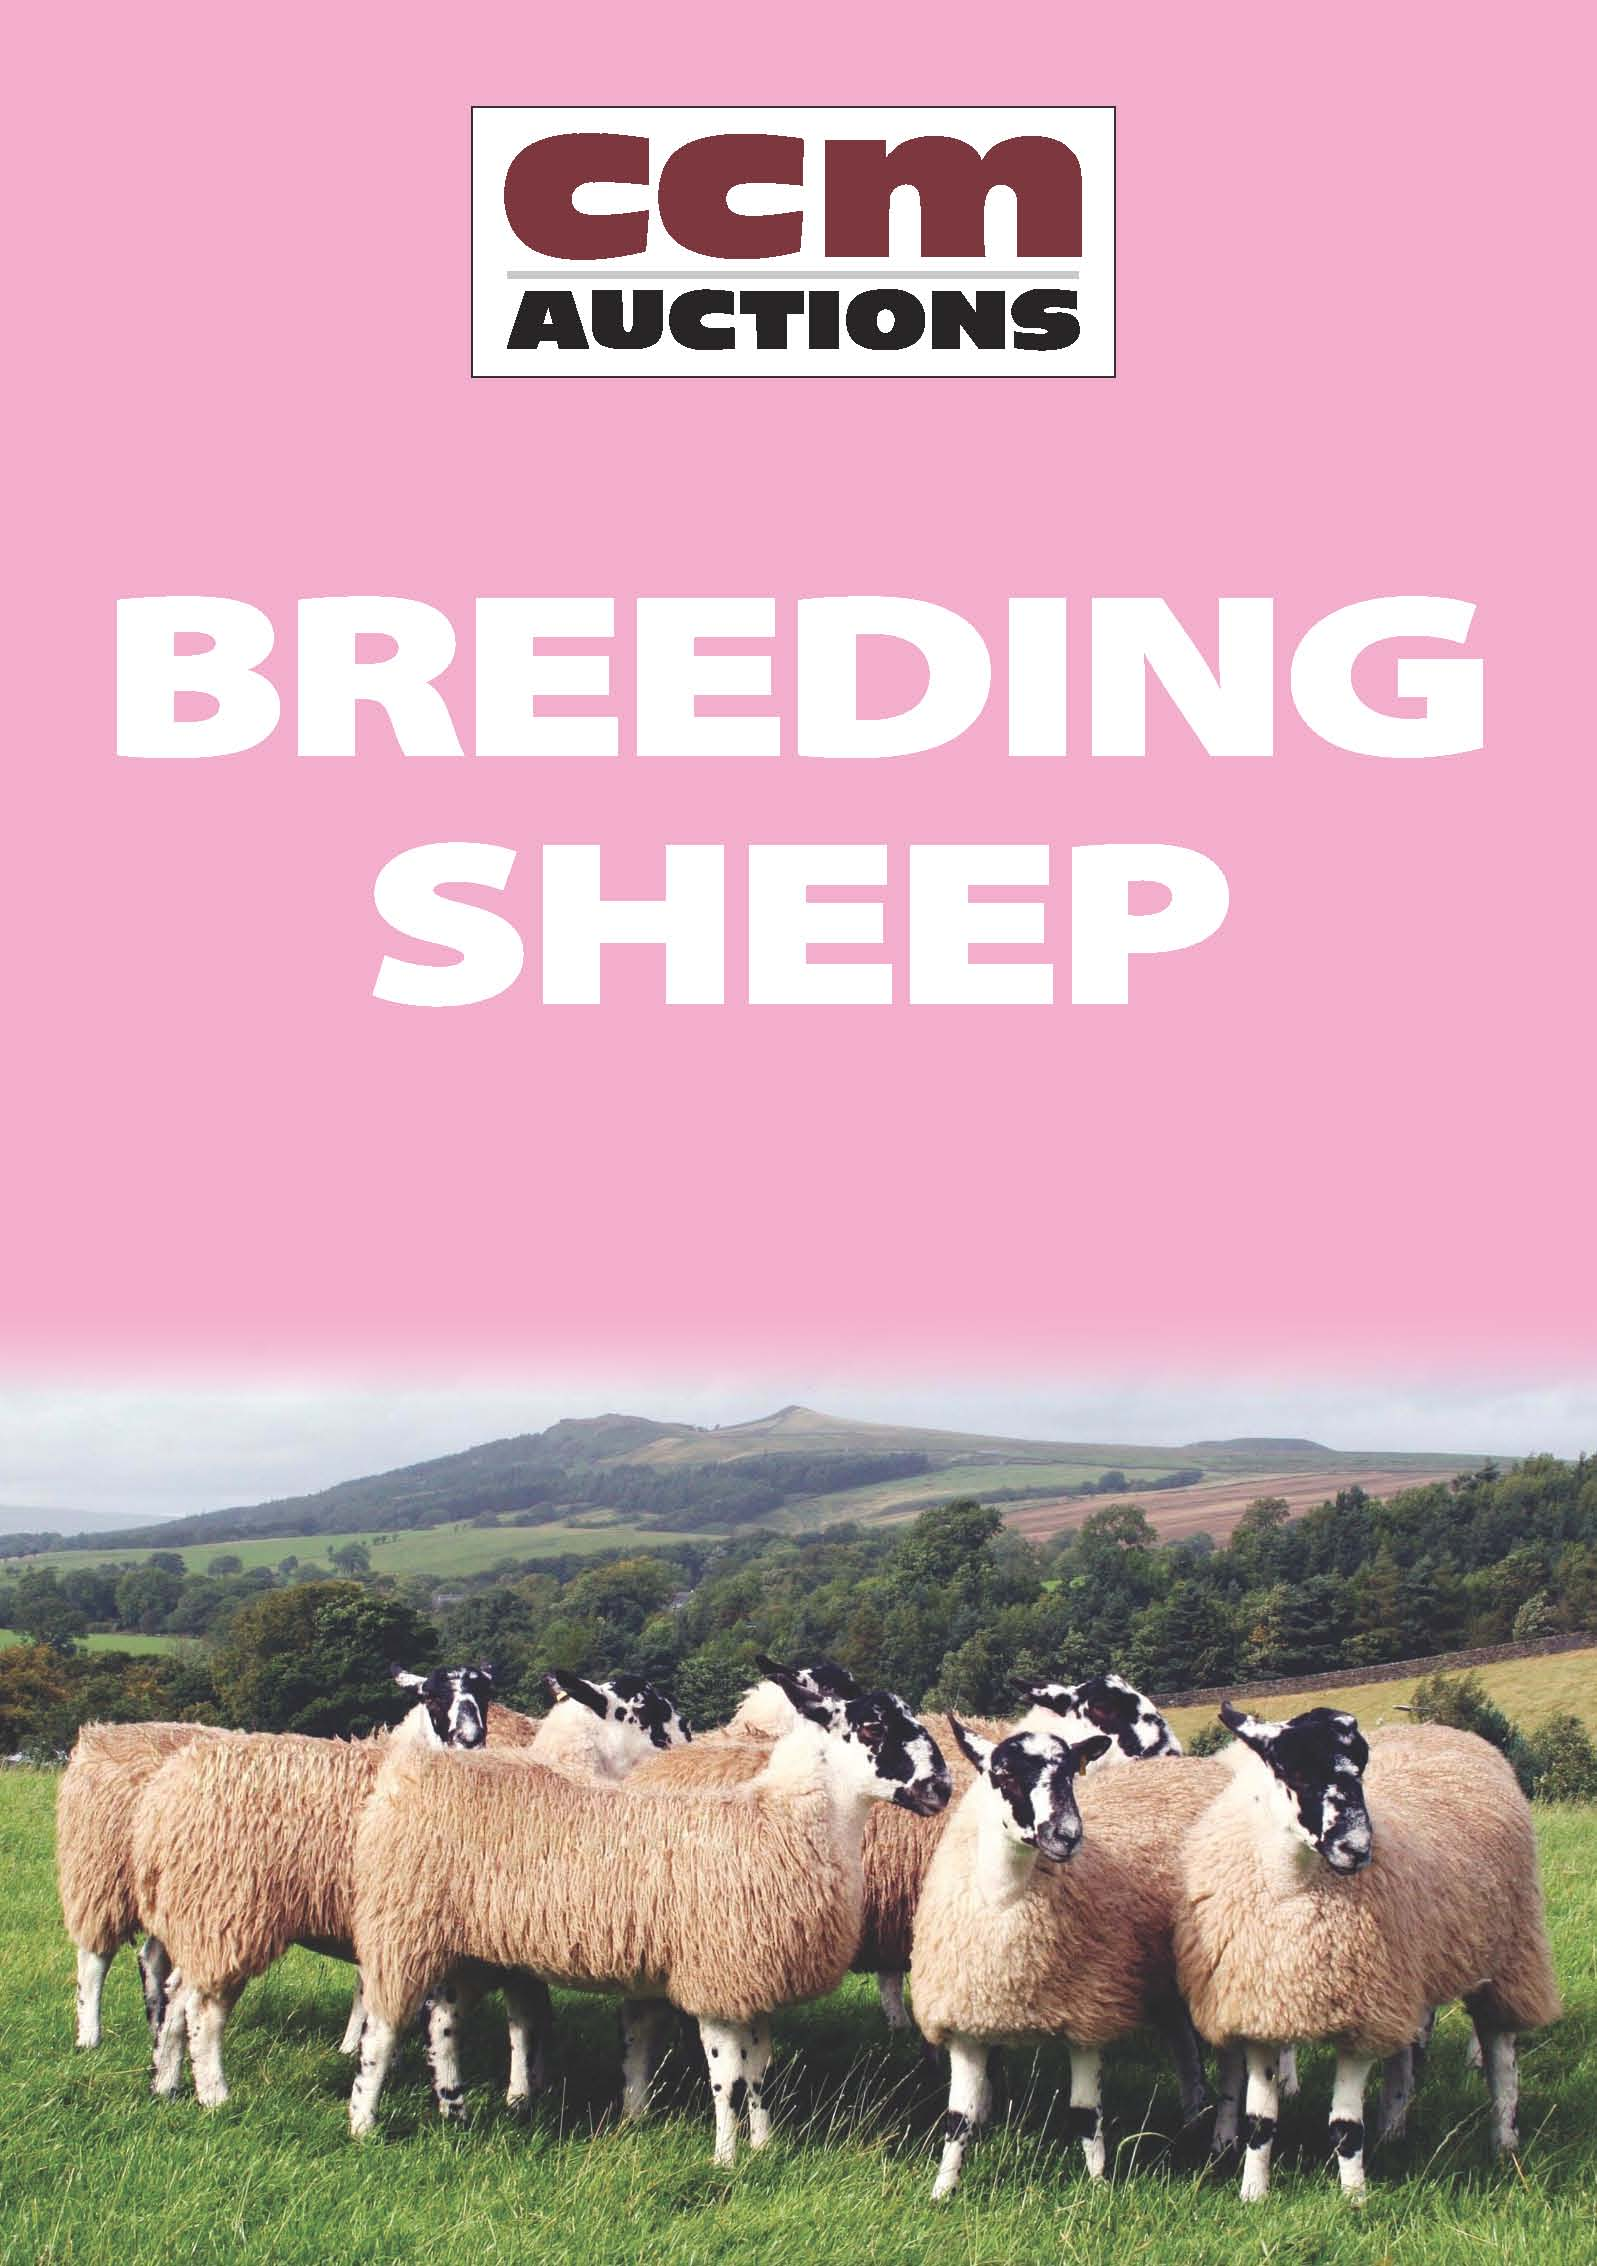 BREEDING SHEEP - MONDAY 25TH APRIL 2016